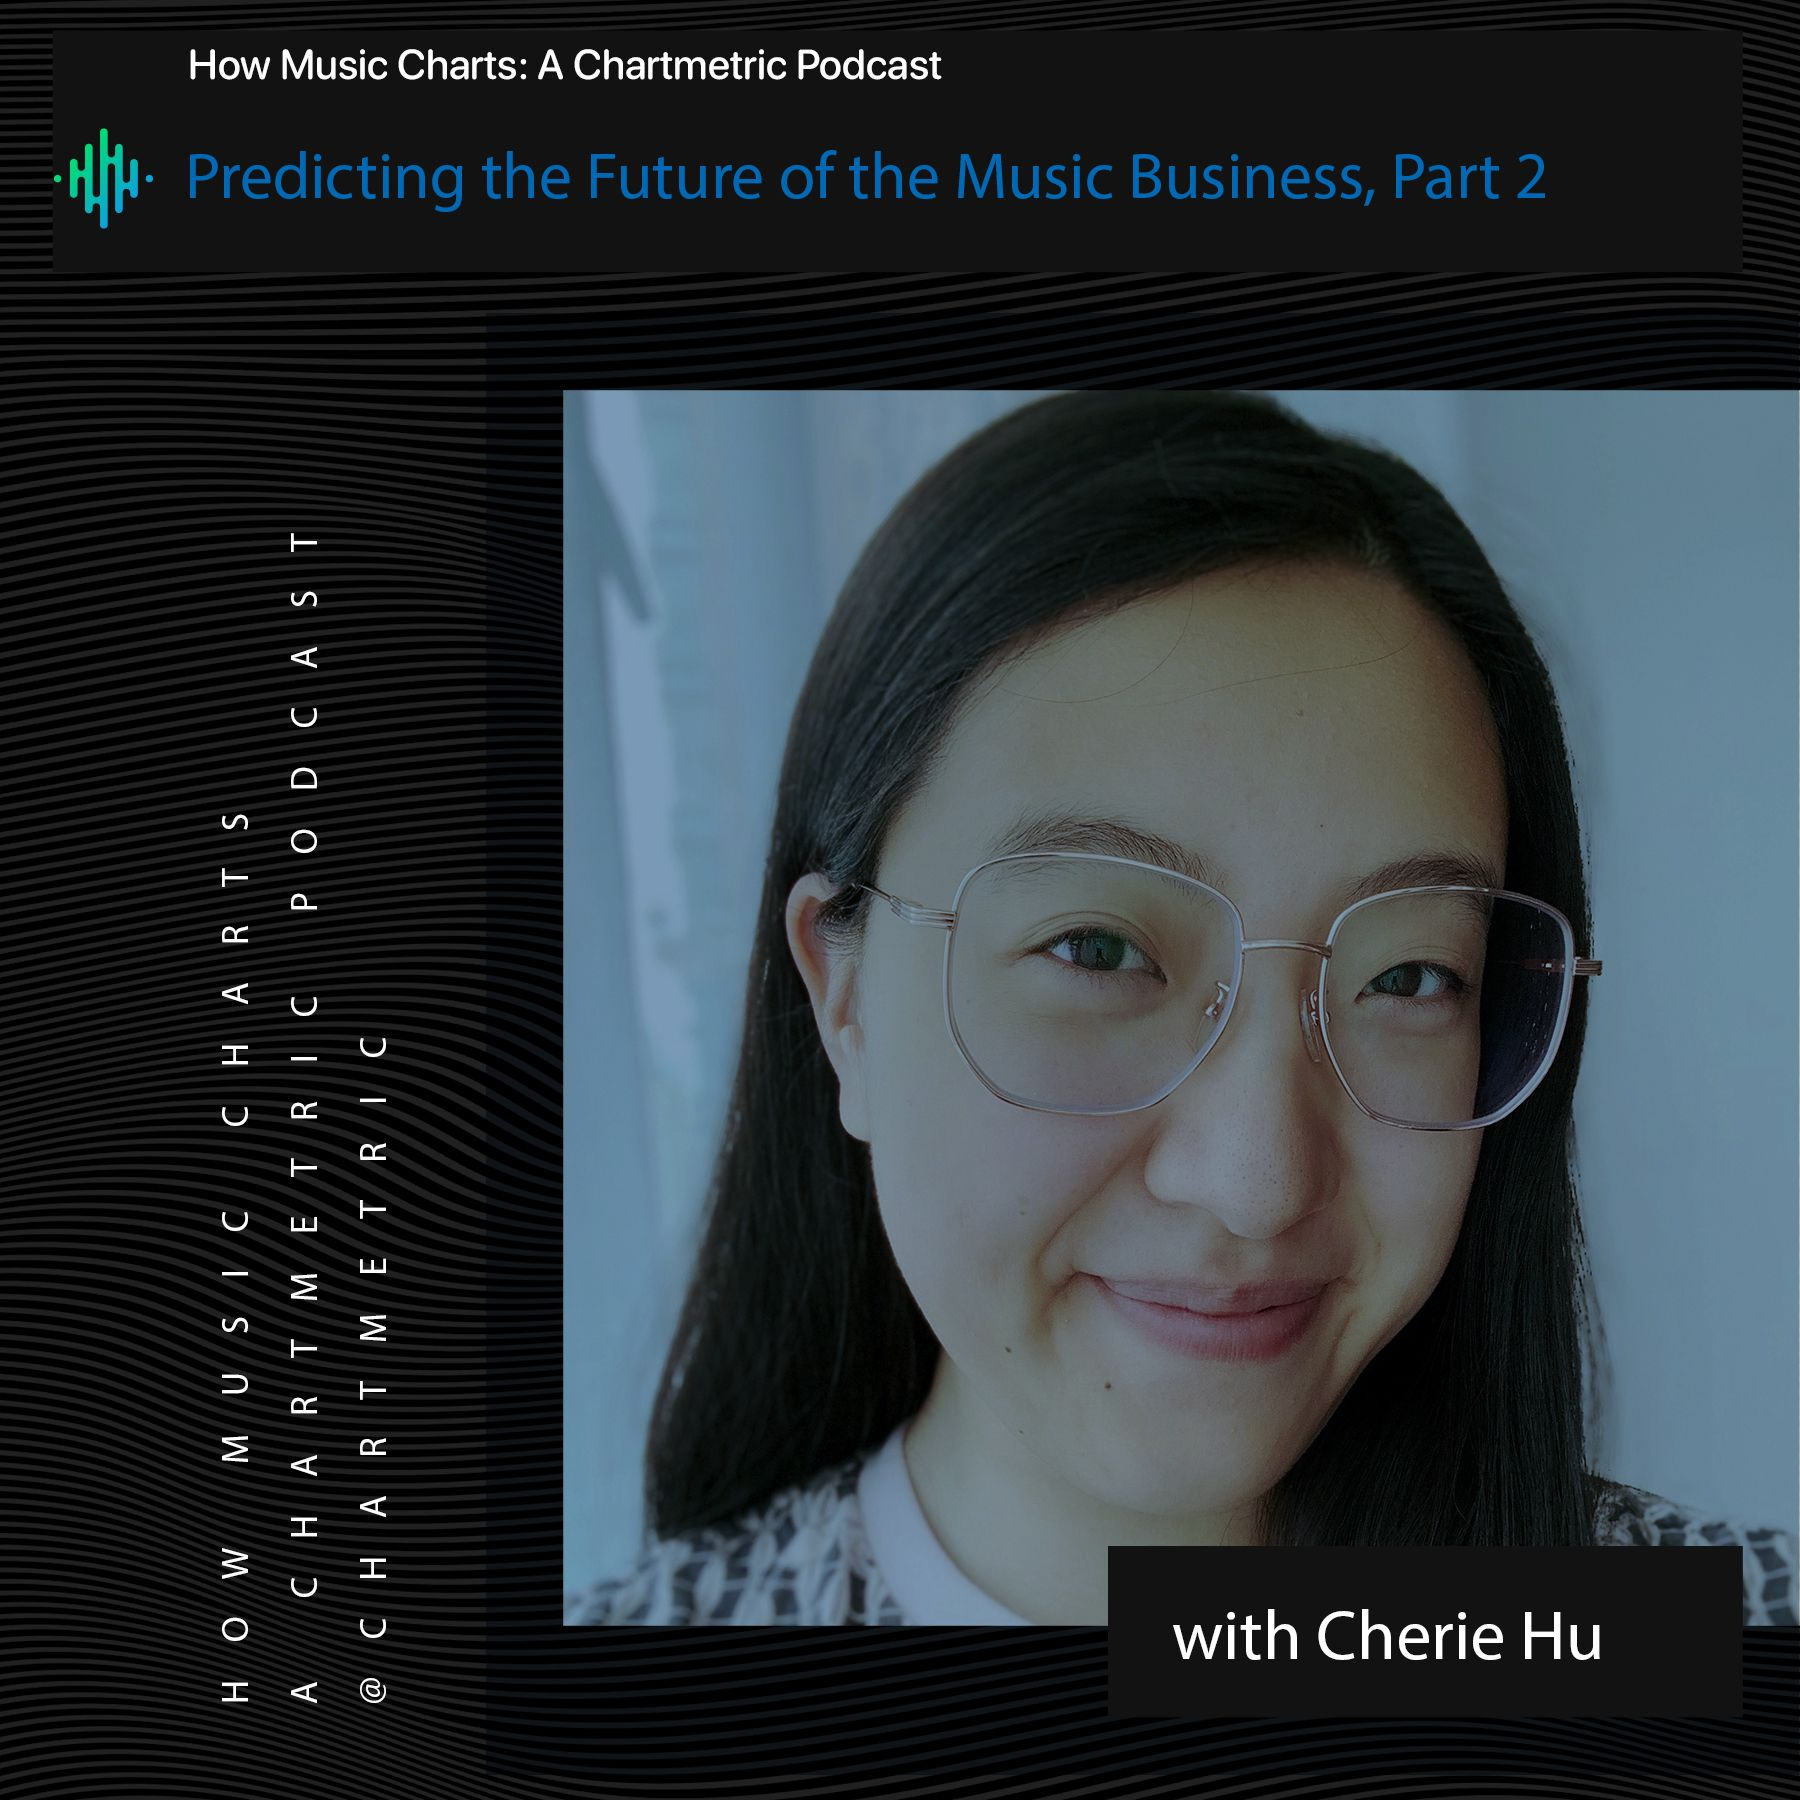 Predicting the Future of the Music Business With Cherie Hu, Part 2